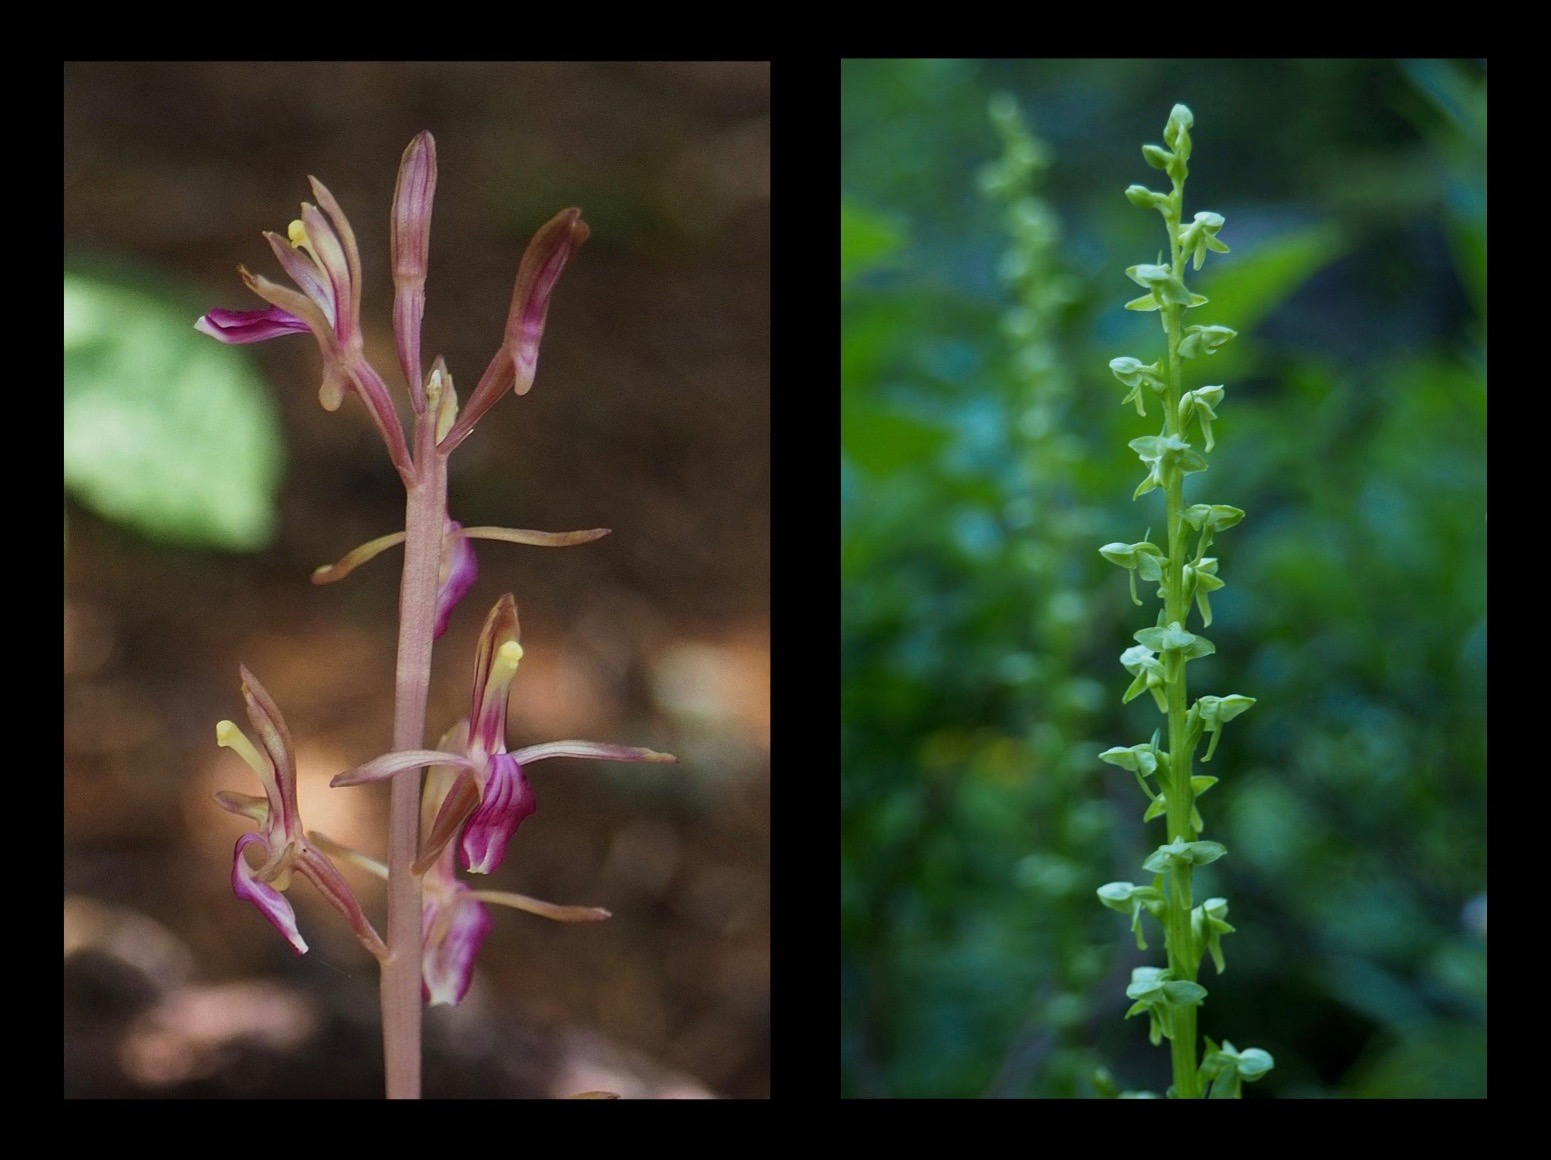 Varied species of diminutive native orchids populate the trailside. Lacking leaves and chlorophyll, western coralroot orchids (Corallorhiza mertensiana) (left) nevertheless thrive in the shadowy woodlands where few other plants bloom because they draw nutrients from fungi in the soil, rather than from light. In contrast, slender bog orchids (Platanthera stricta) (right) appear to contain nothing but chlorophyll, being uniformly green from leaf to bloom and readily disguised amongst the meadow grasses. Walt Bailey Trail, July 24, 2016.